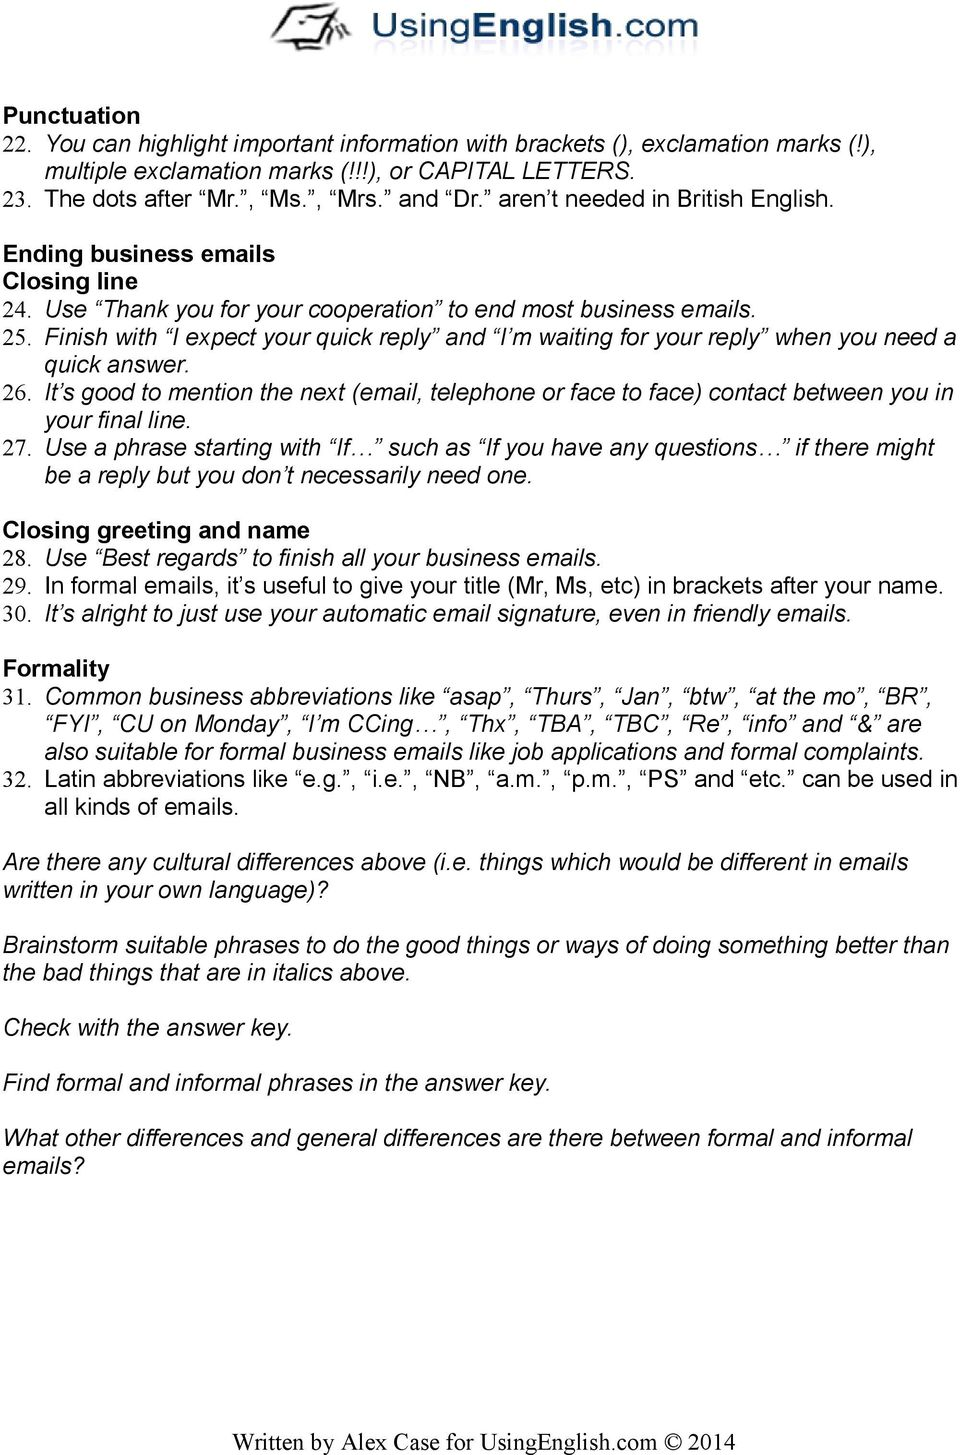 Business S Tips And Useful Phrases Pdf